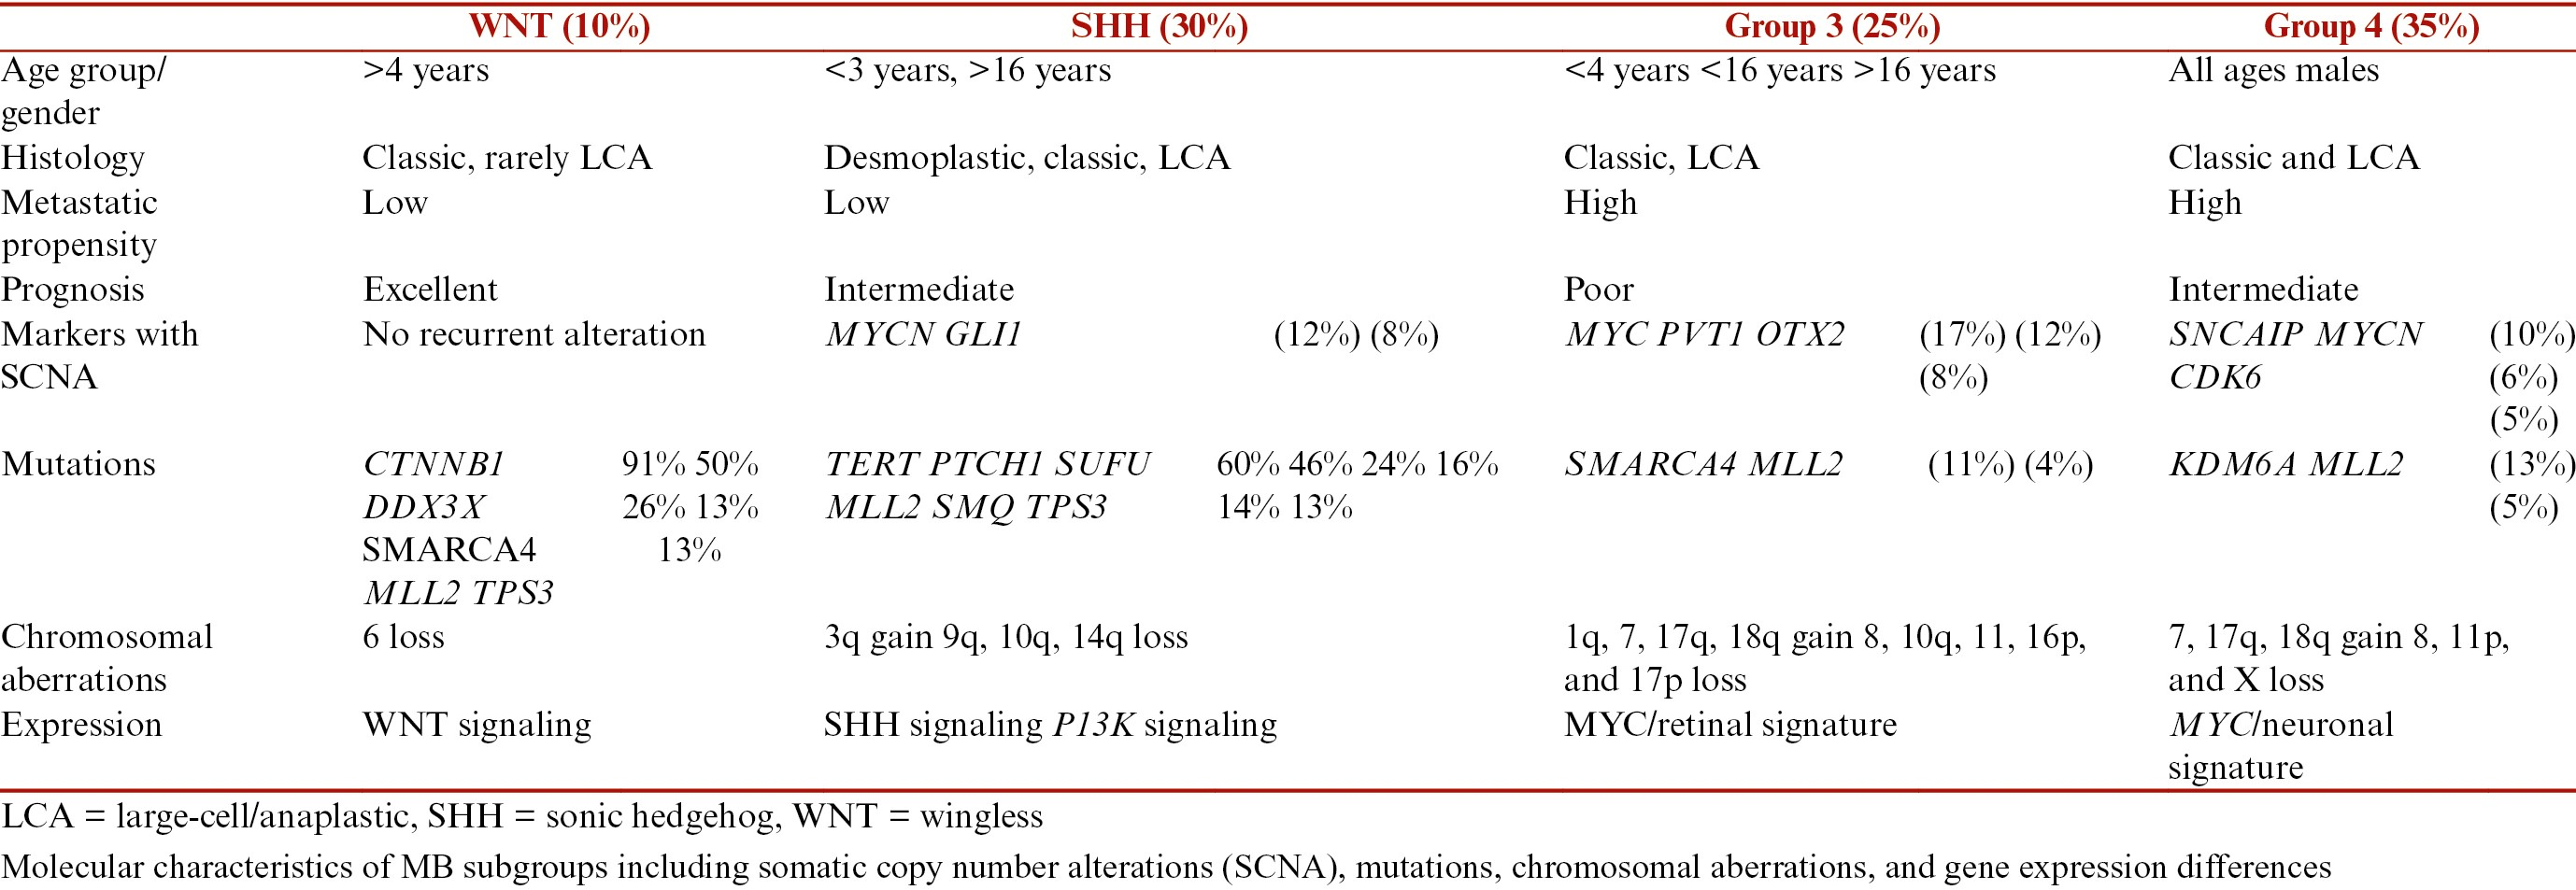 Table 1: Clinical and genetic characteristics of the MB subgroups